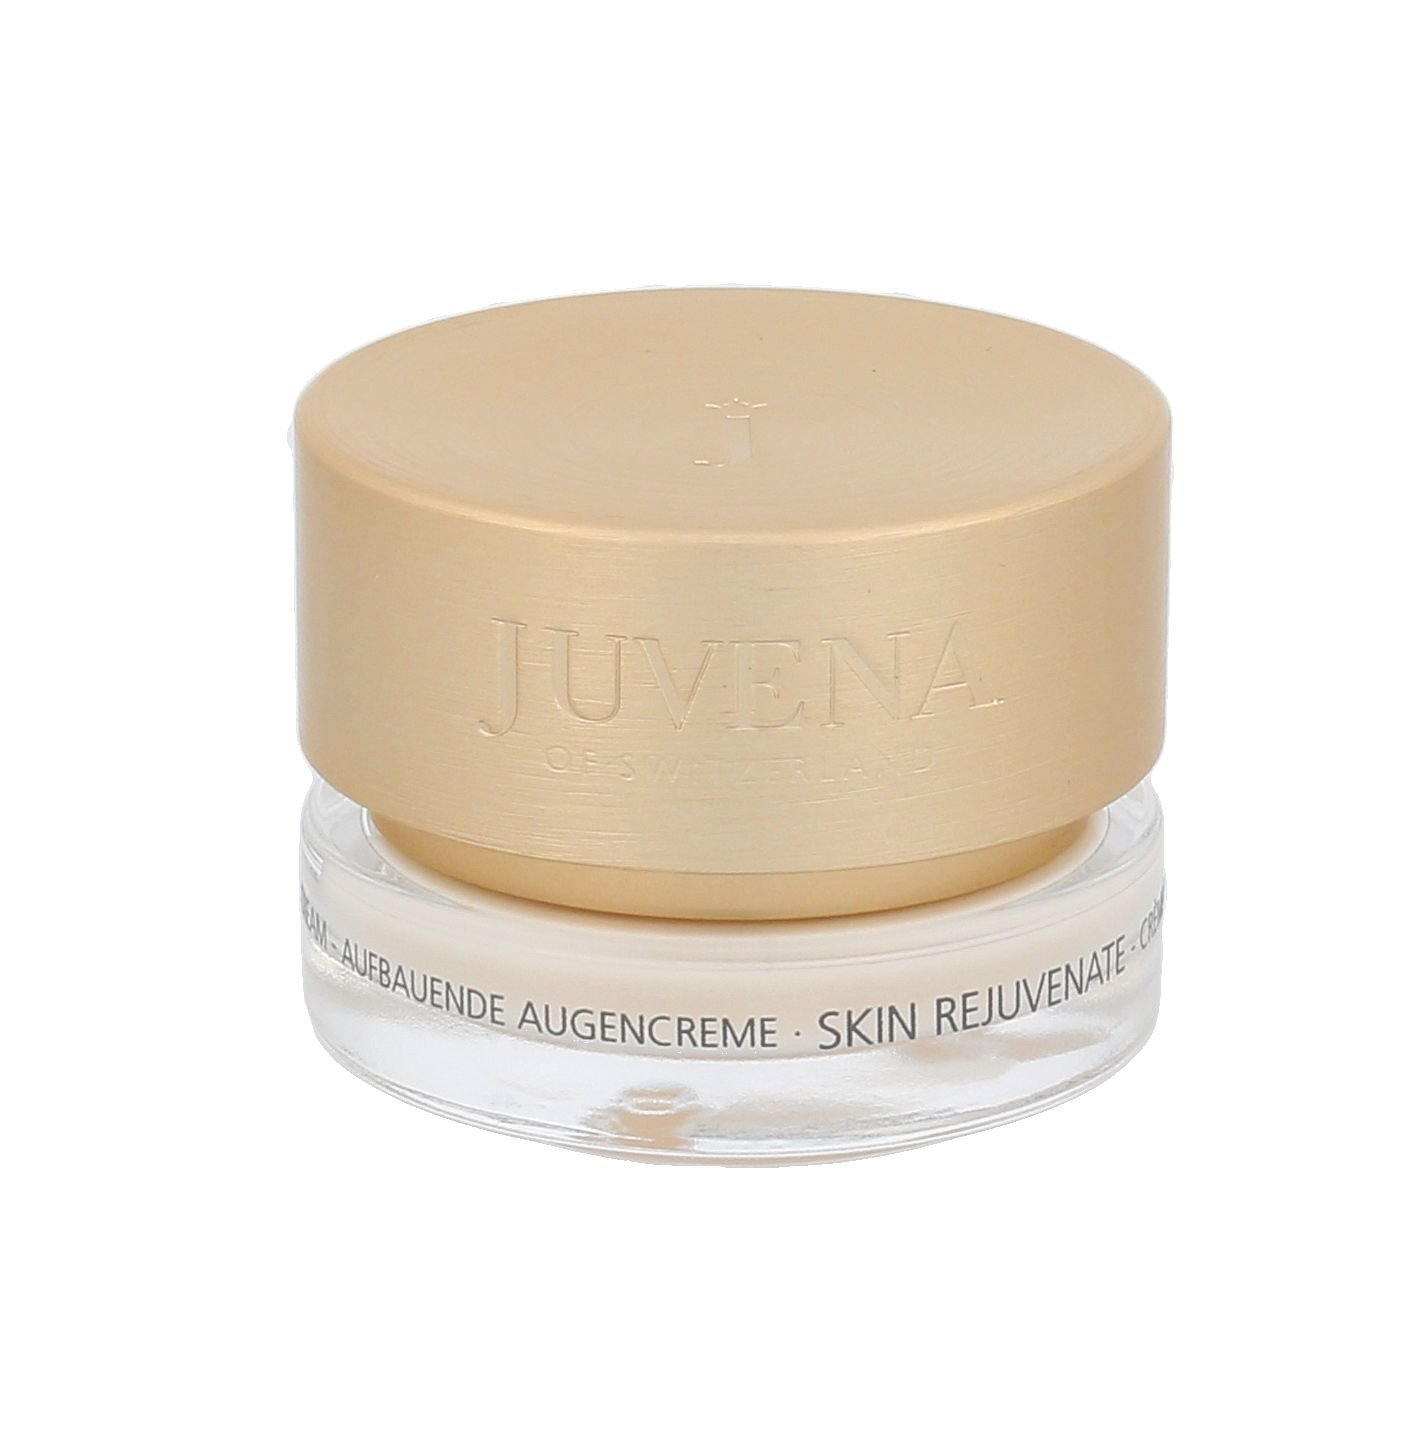 Juvena Skin Rejuvenate Nourishing Cosmetic 15ml